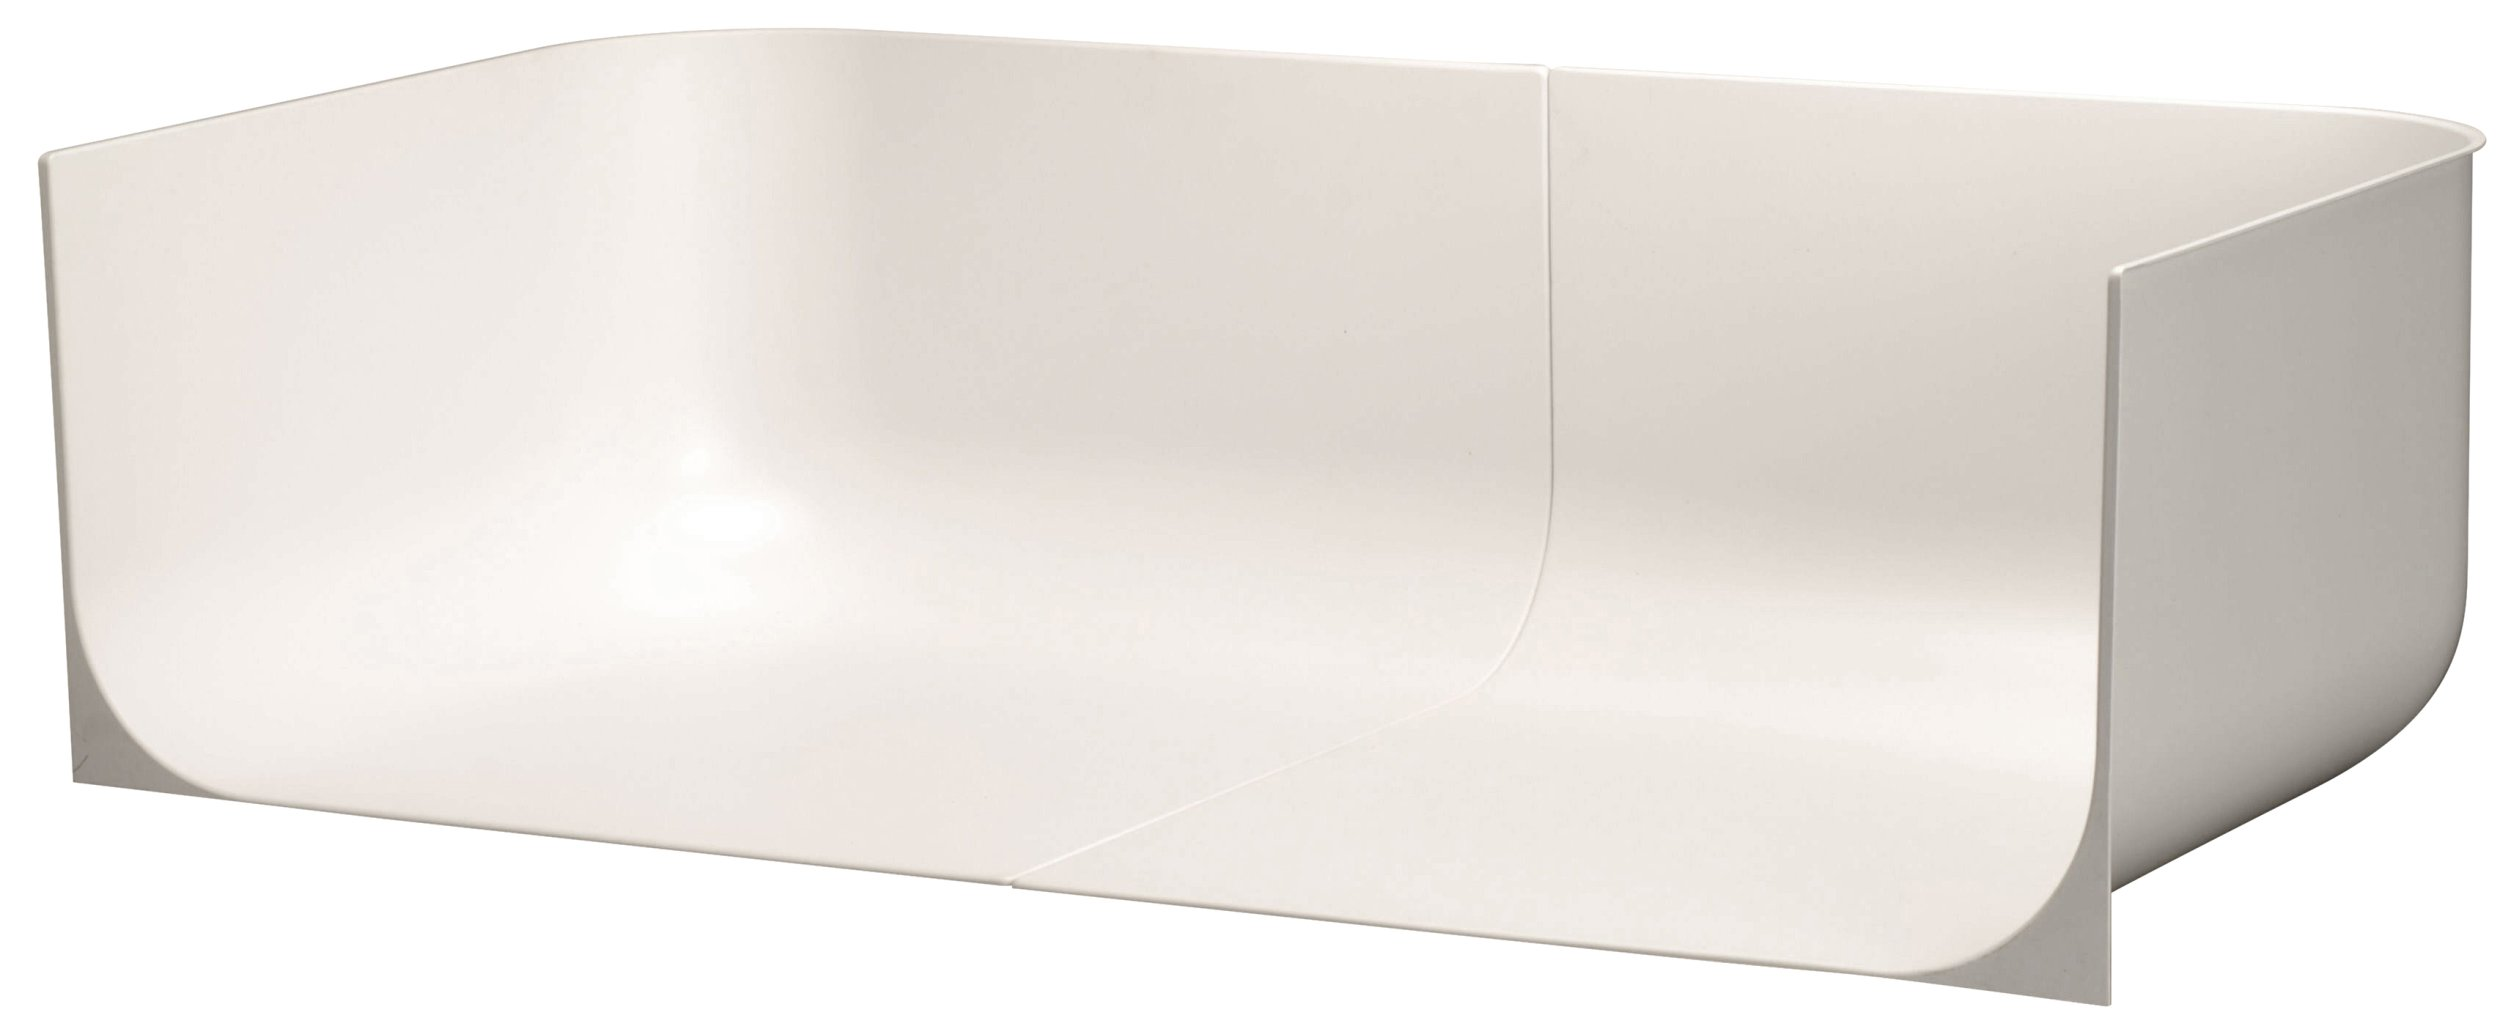 MyStudio MS20CYC-2 Professional Table Top Photo Studio Seamless Cyc Dual Background Set (2) for Product Photography, 40x20x12 inches by MyStudio